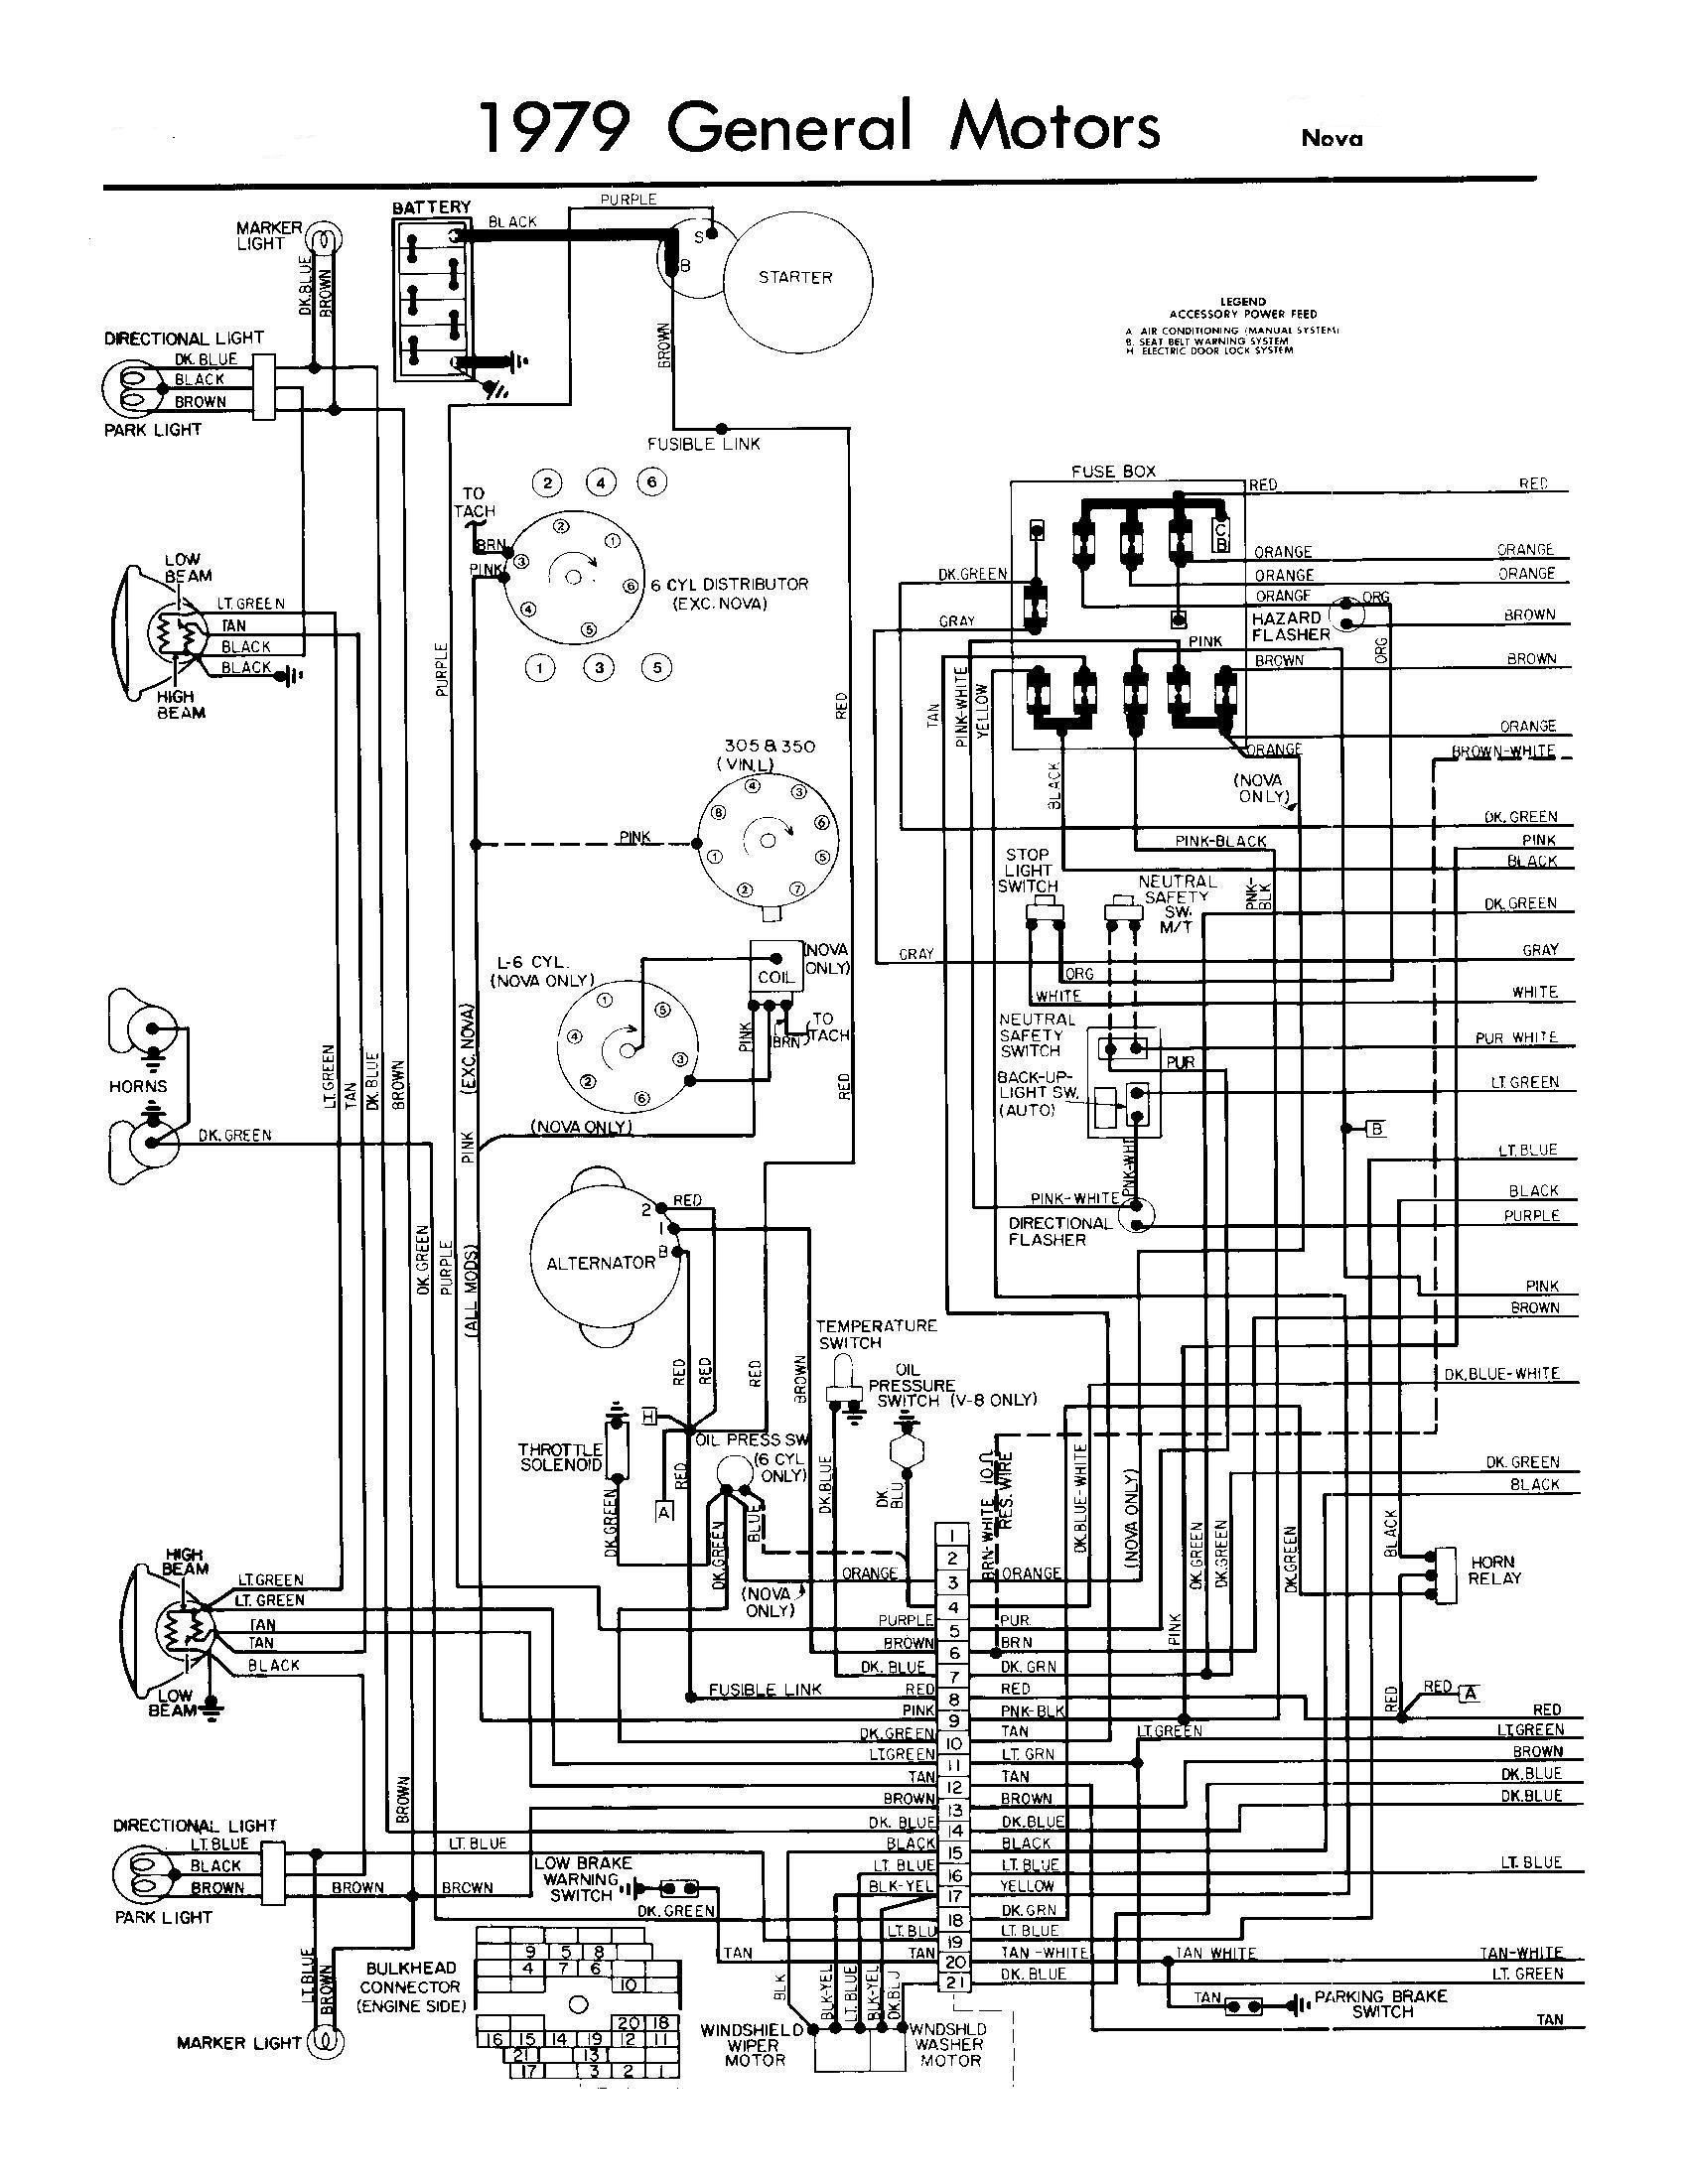 1968 chevy truck wiring diagram schematic wiring diagram rh blaknwyt co GMC Truck Electrical Wiring Diagrams GMC Truck Electrical Wiring Diagrams